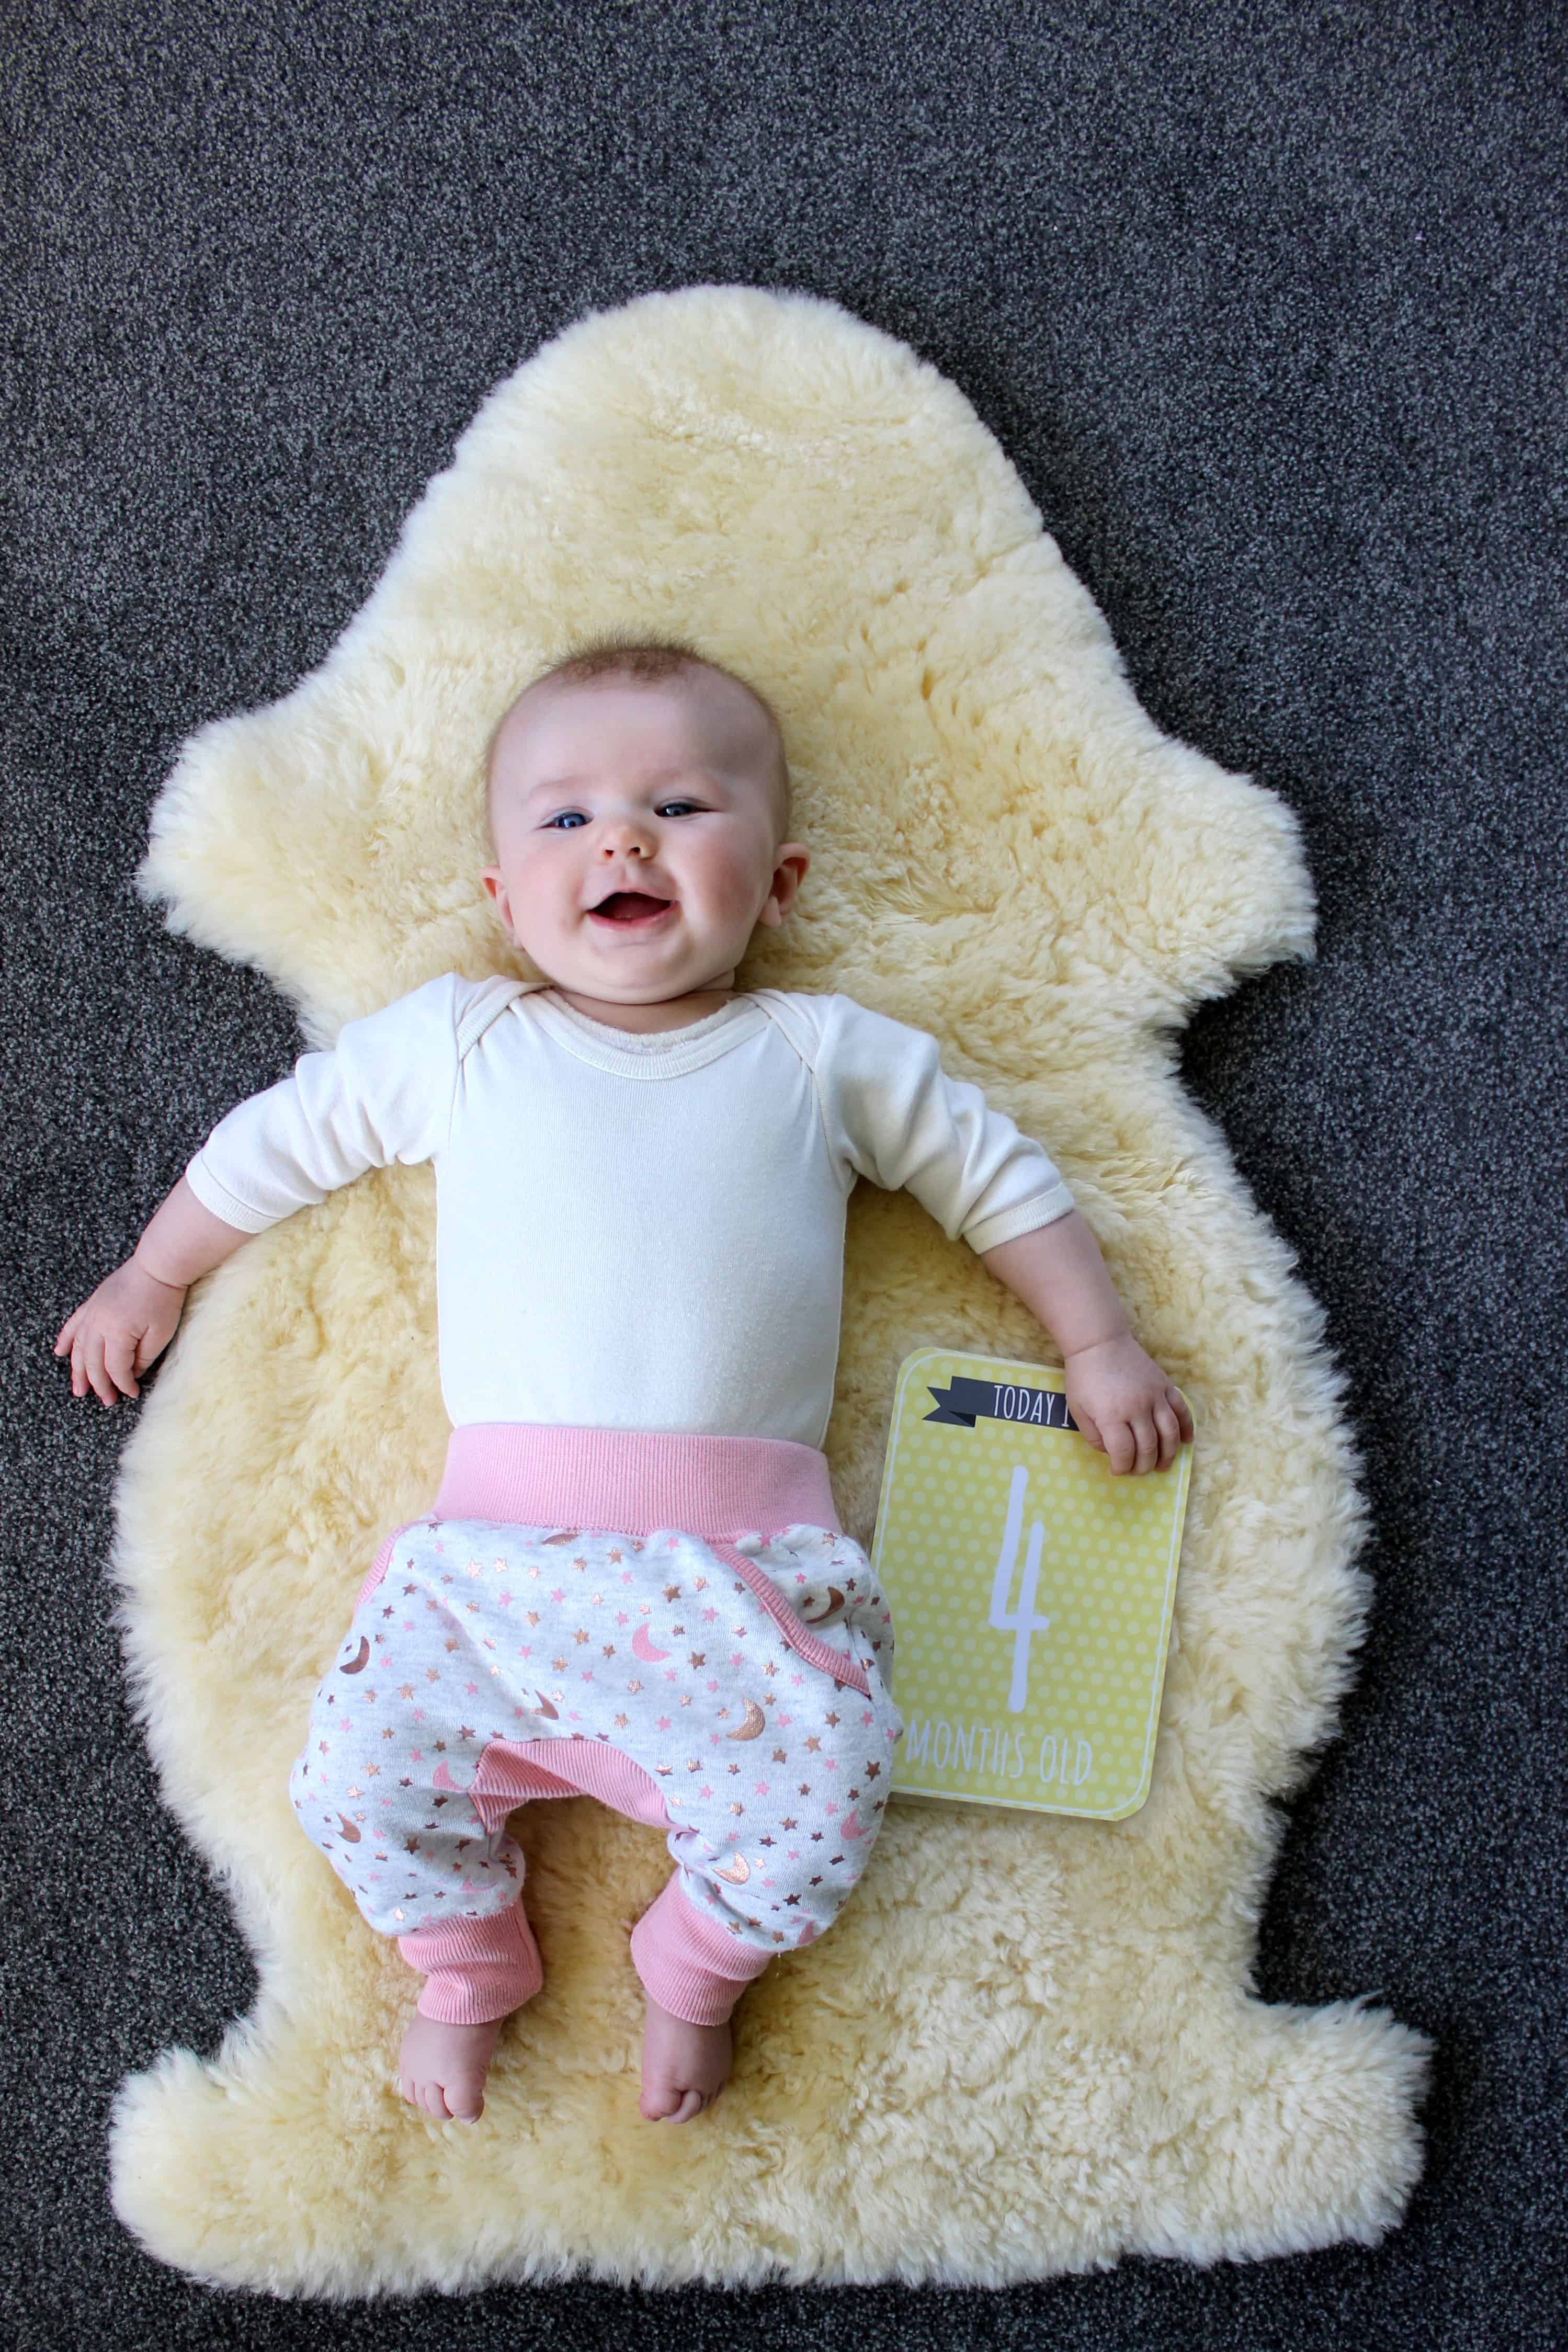 Sadie - 4 months - our happy baby girl and what she's been up to this month. Rolling, swimming, keeping us entertained...she's awesome!